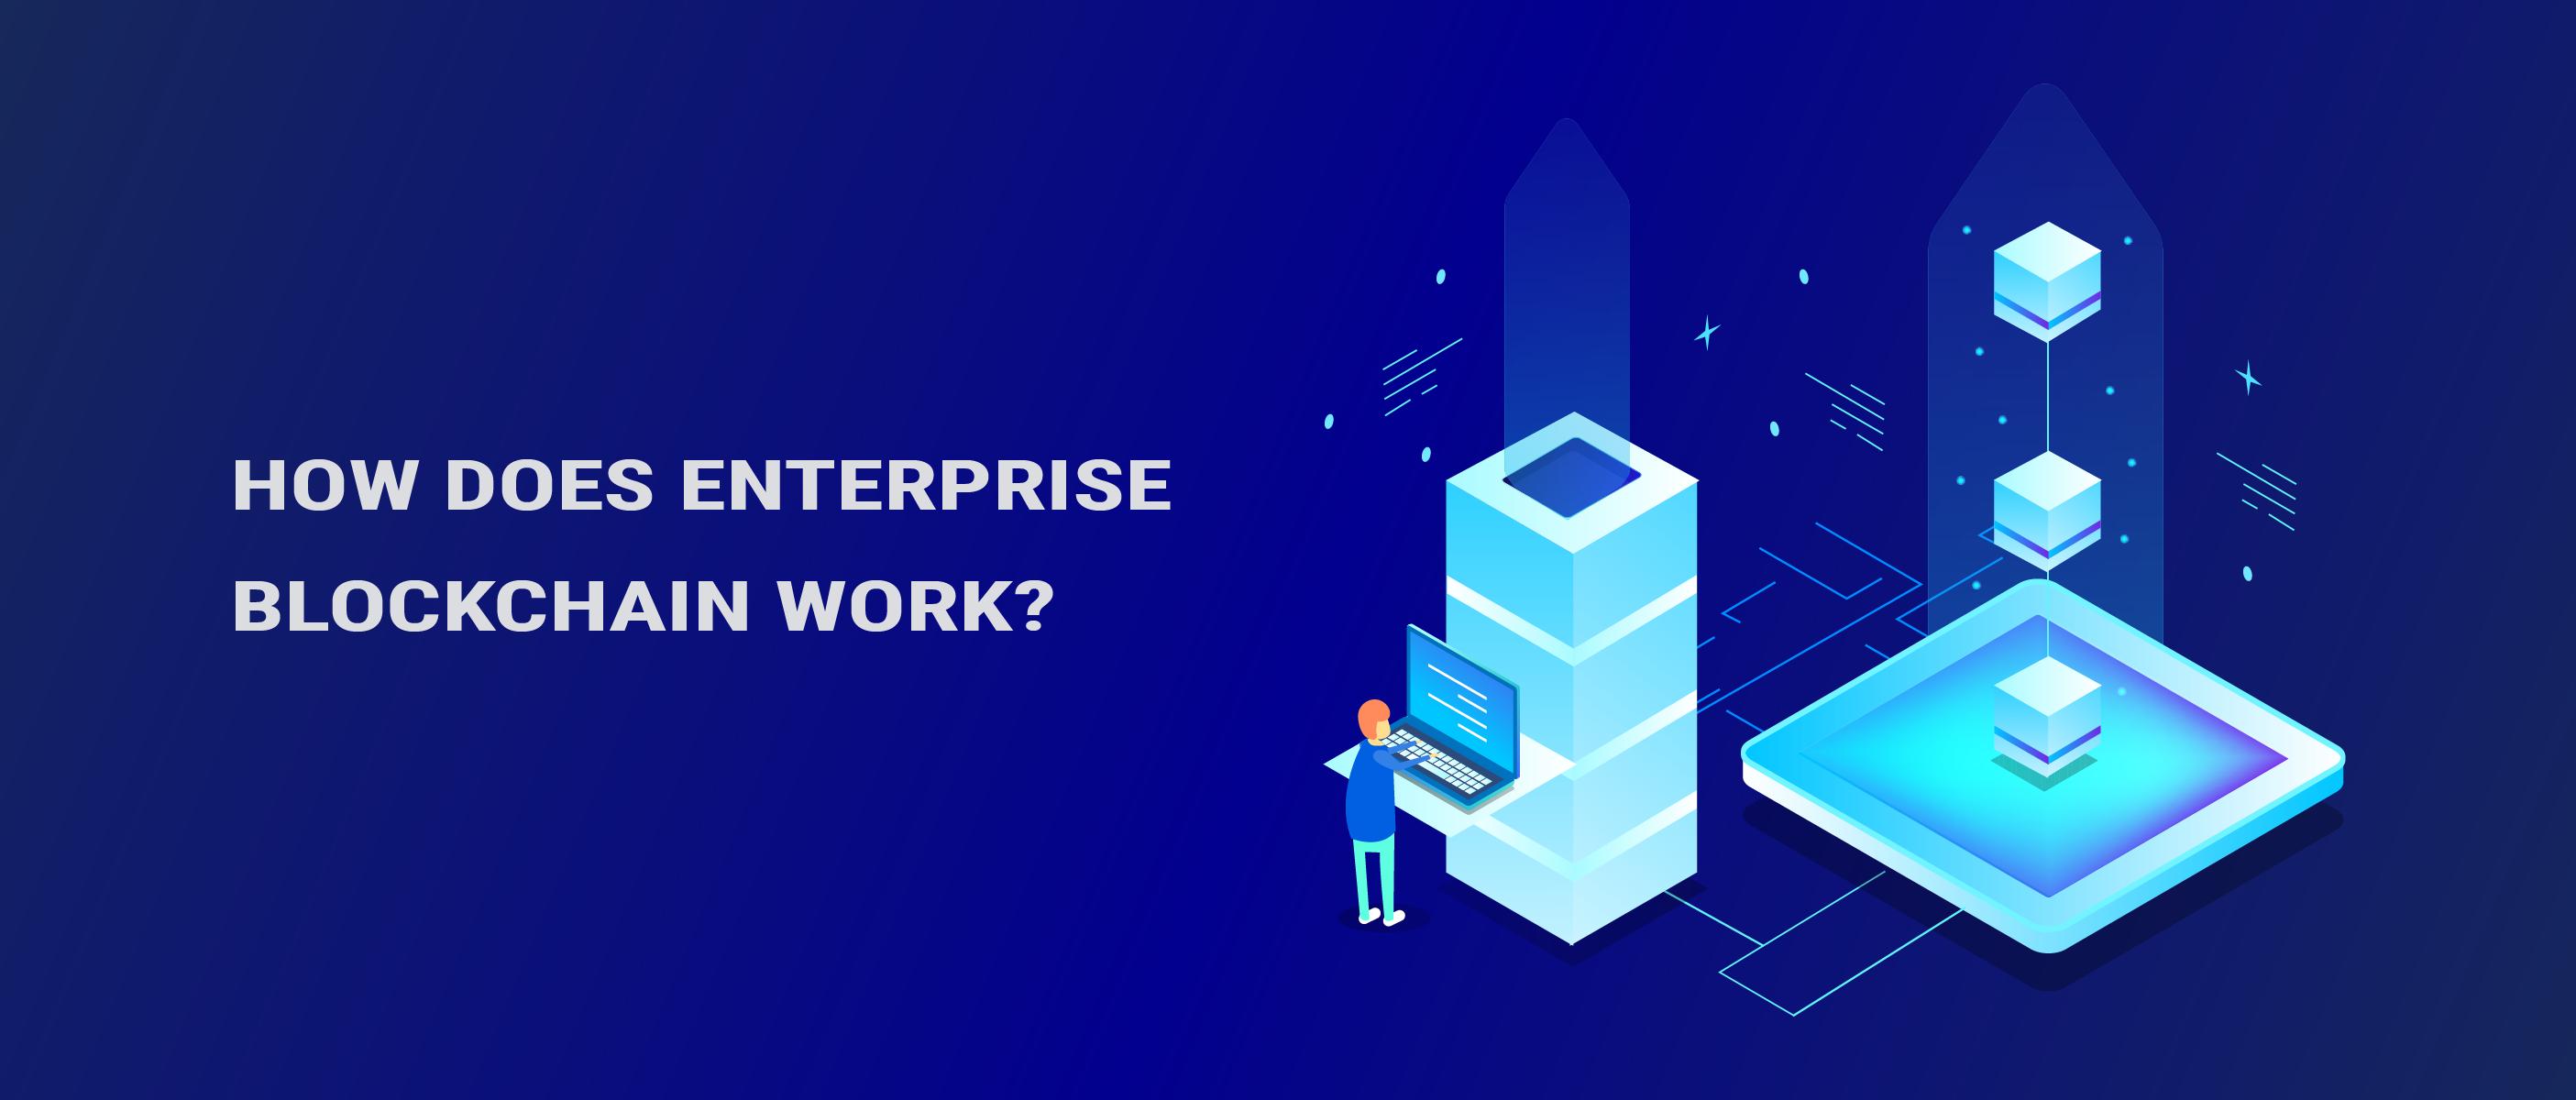 How Does Enterprise Blockchain Work?